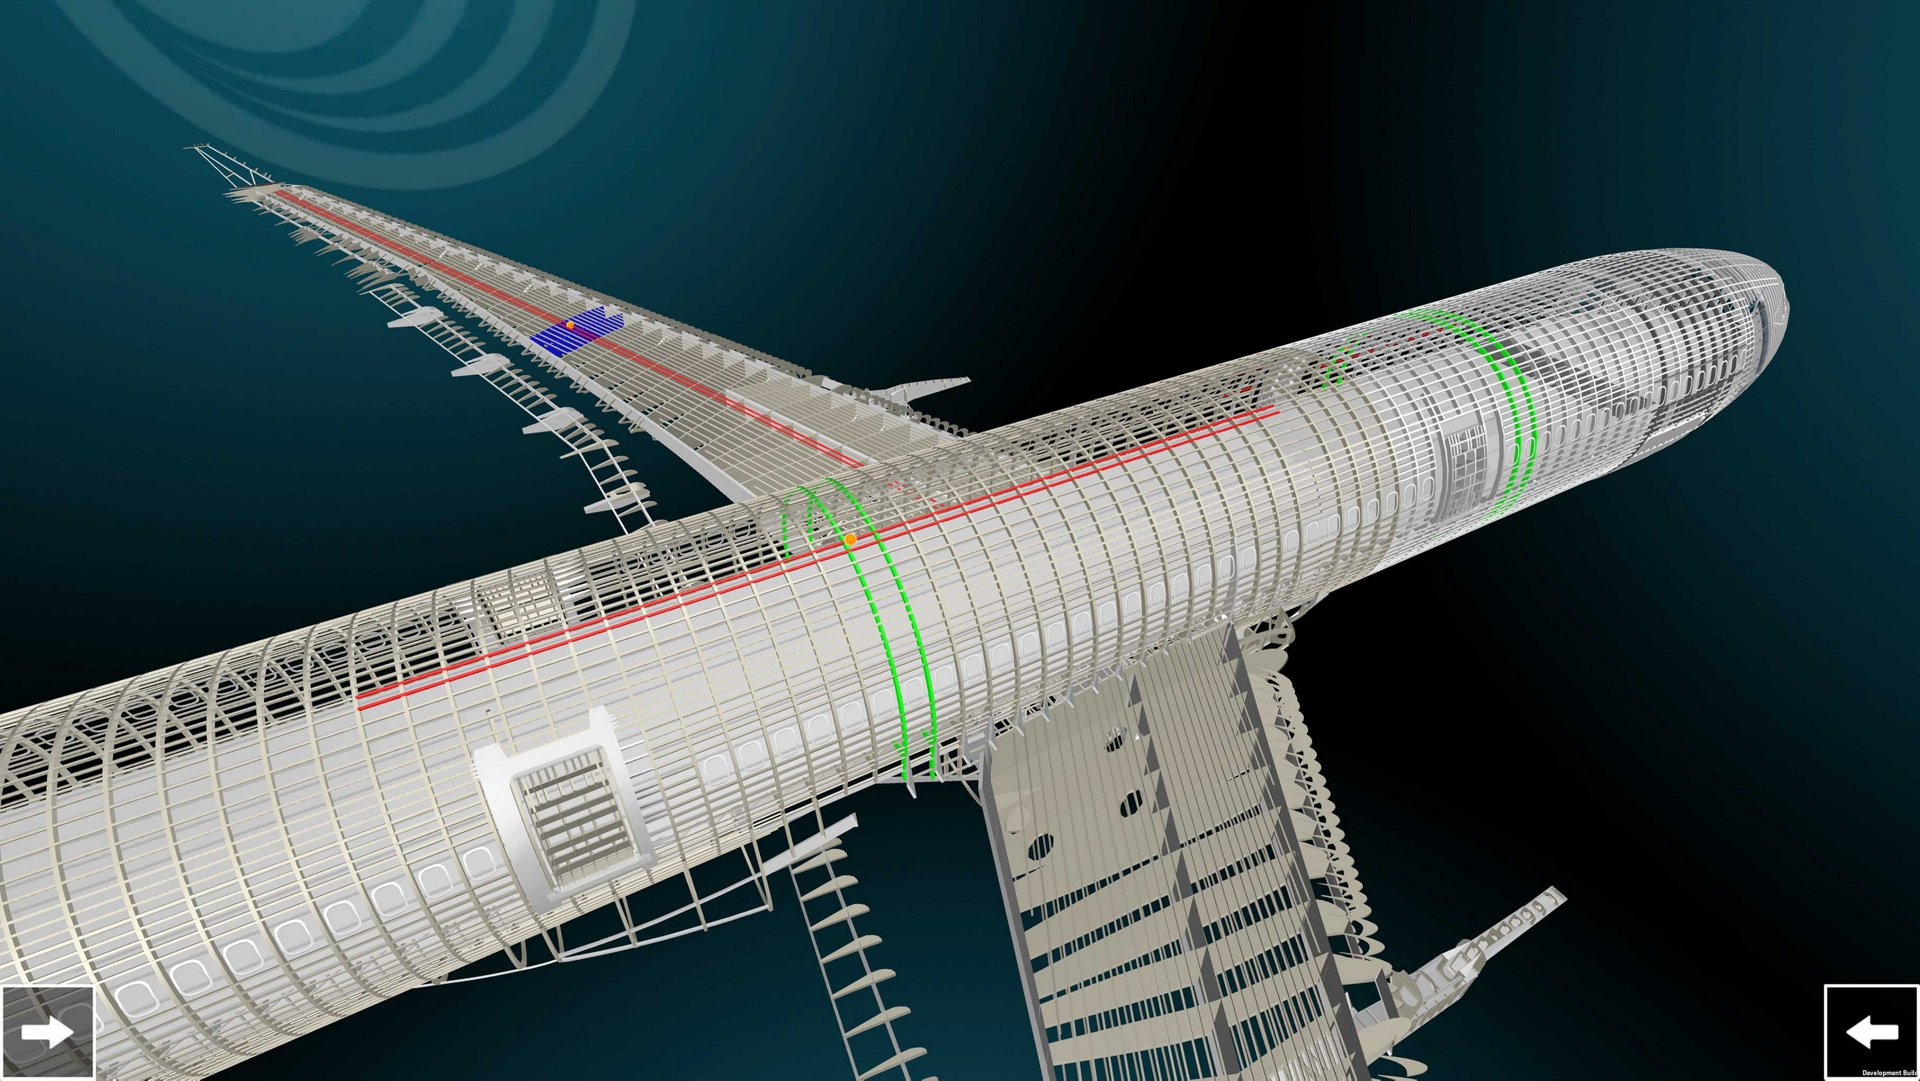 Airbus 3D digital model based on drone pic1